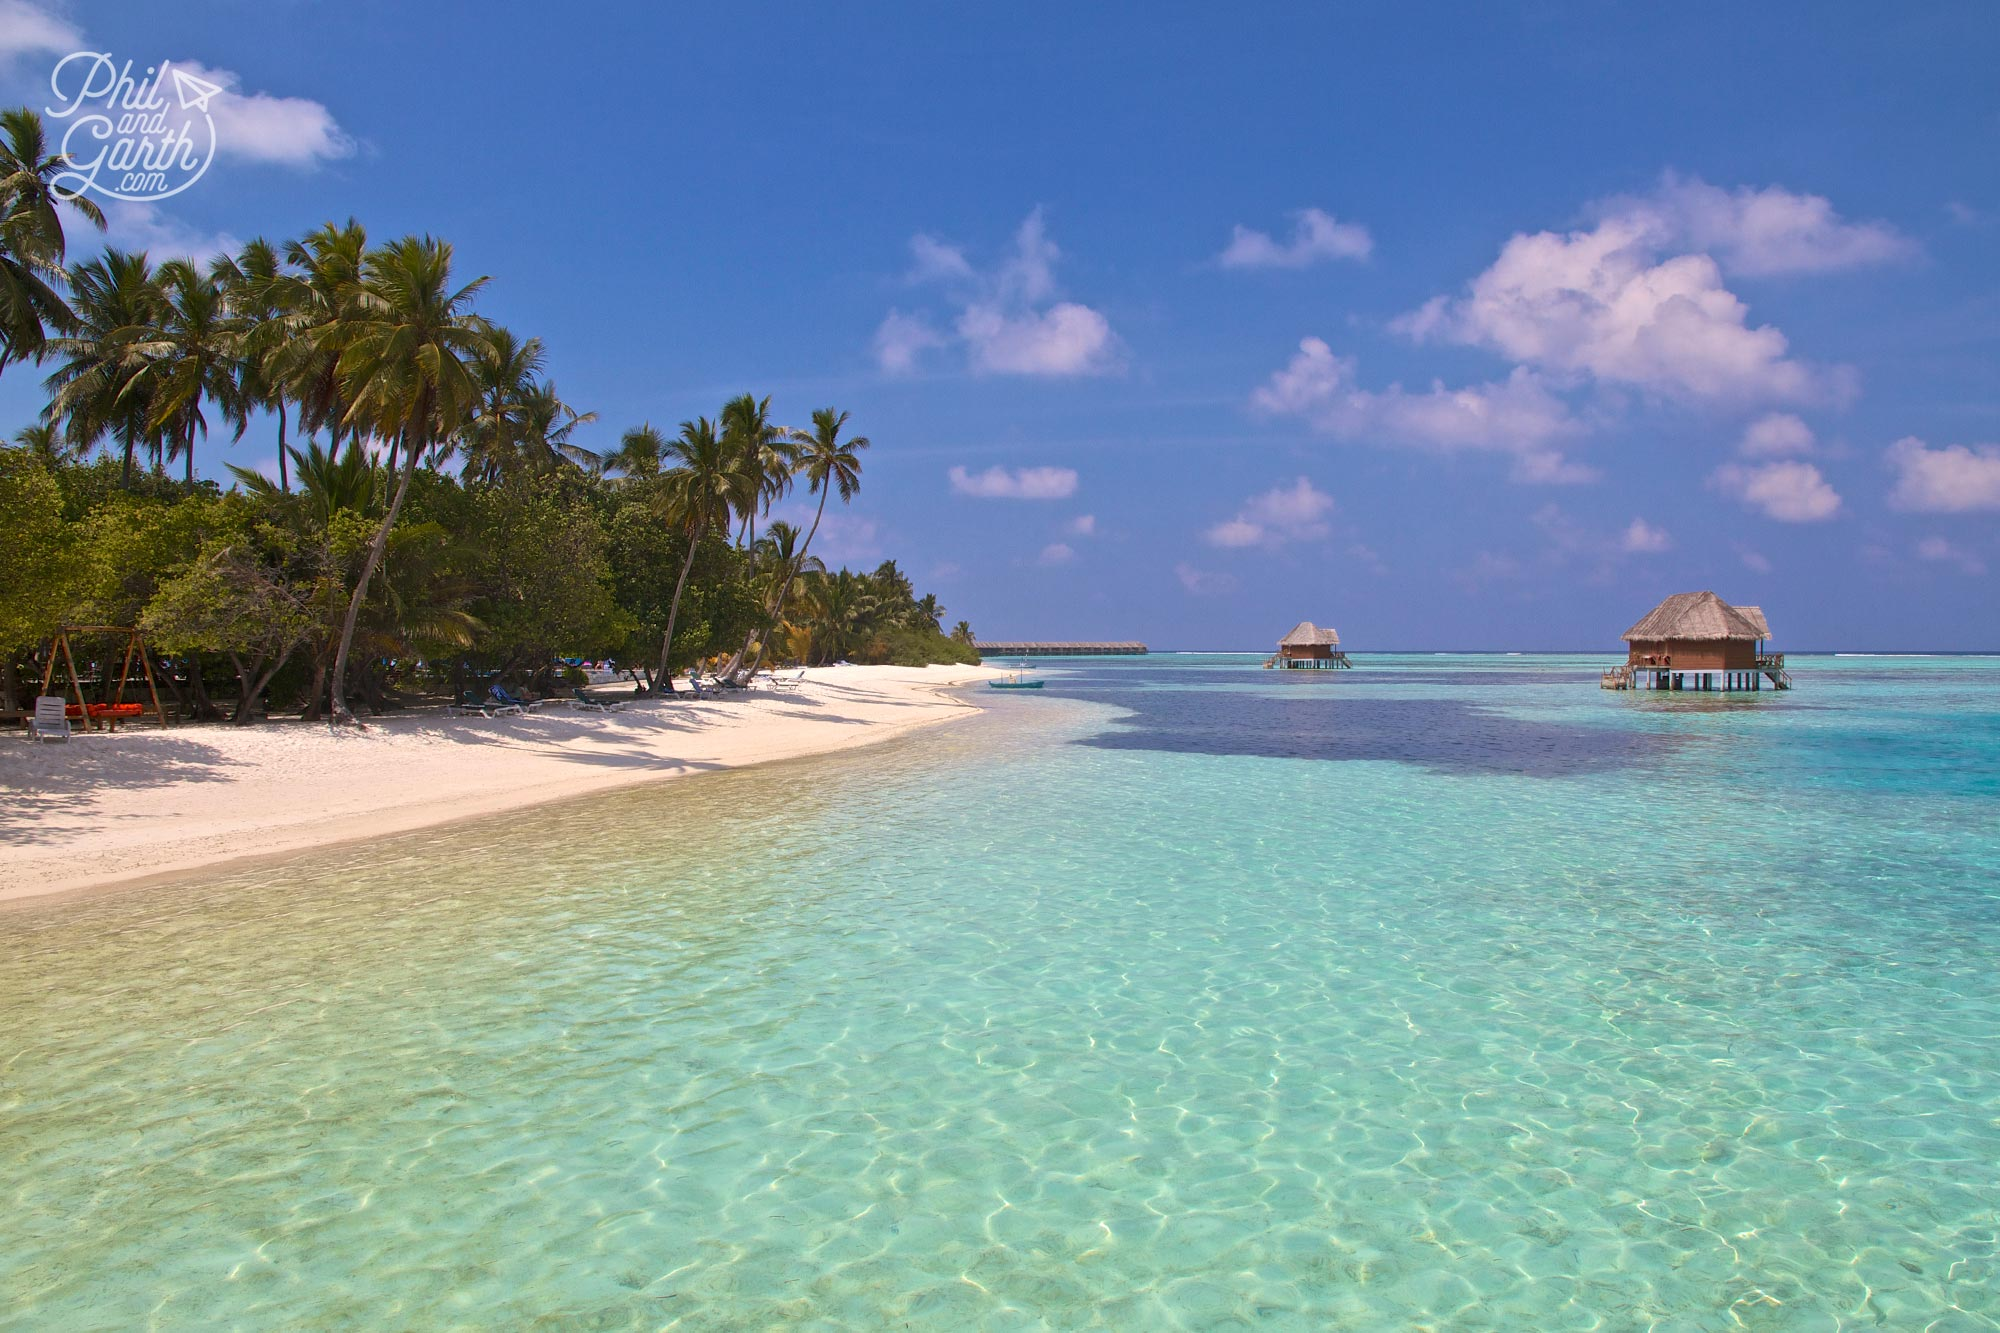 Paradise found - The Meeru Island in the Maldives